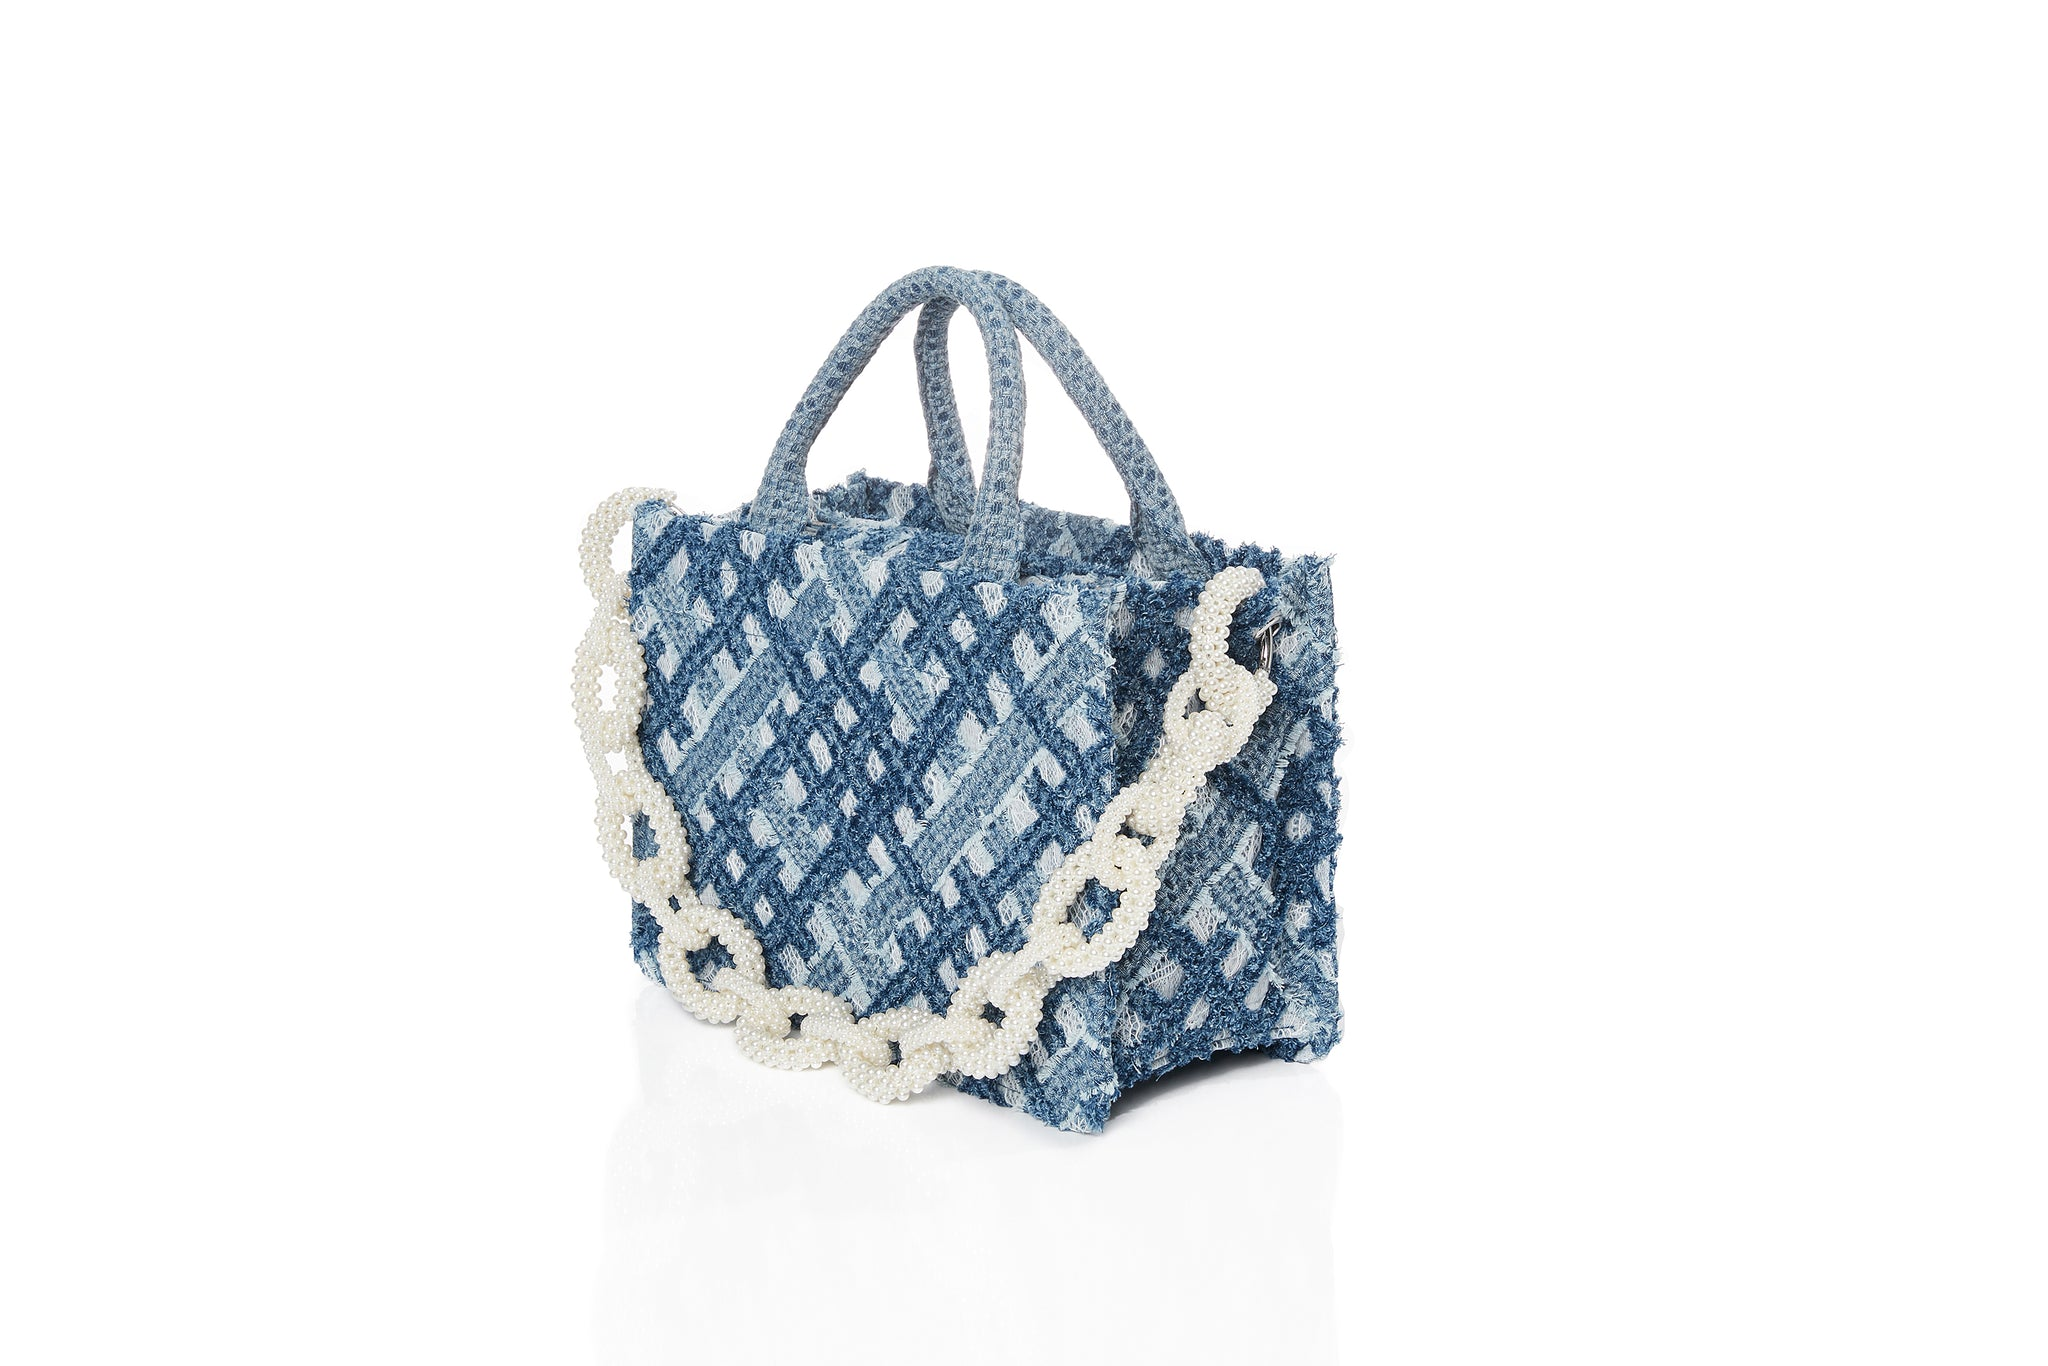 Handwoven Denim on Lace Bag, Small Tote, Pearl Chain, Light Blue